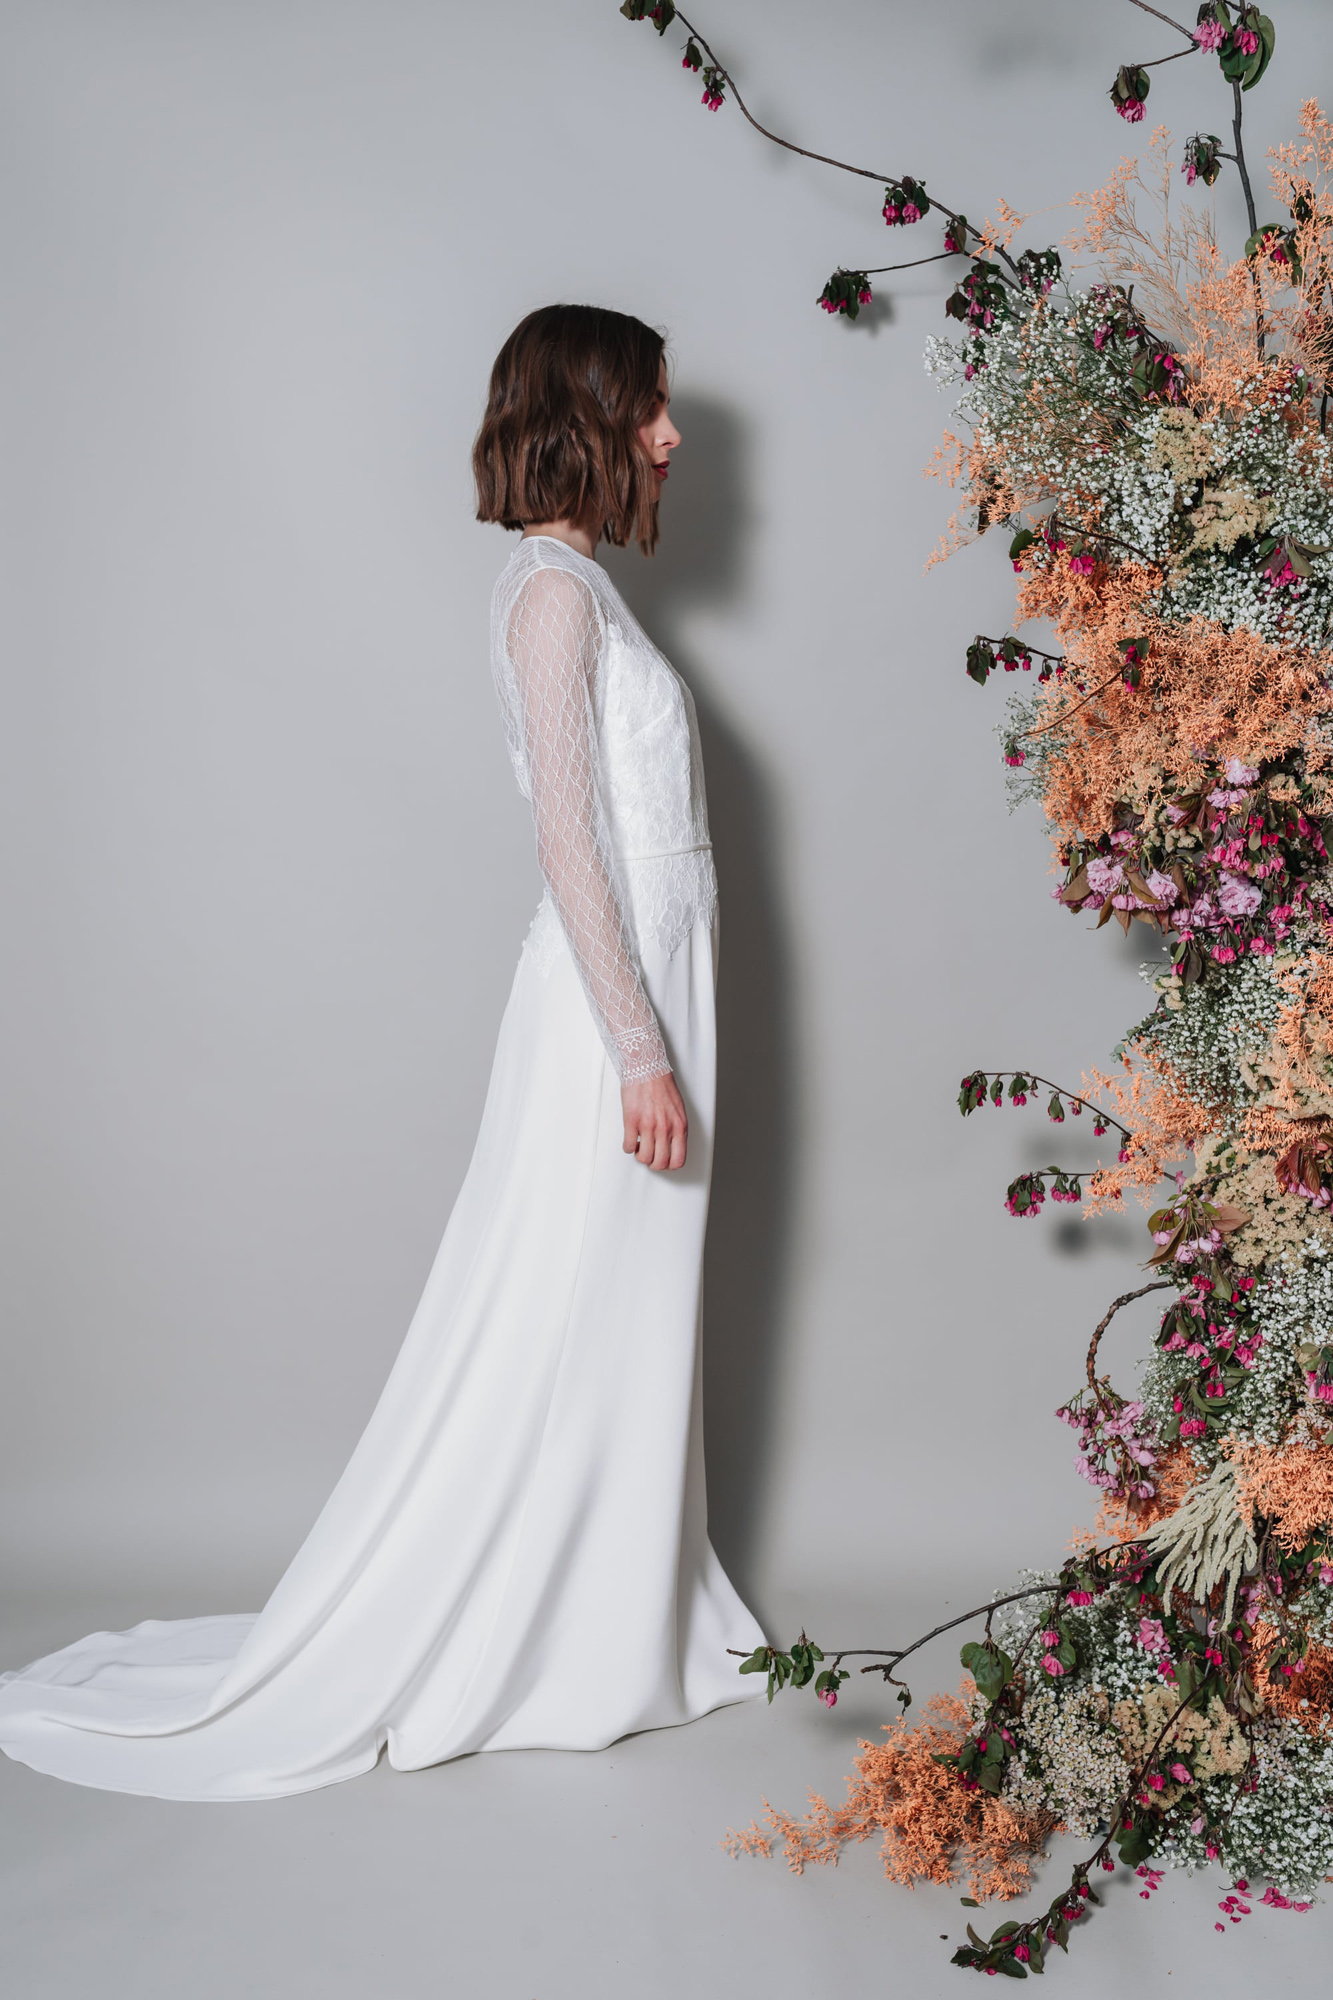 Kate-Beaumont-Sheffield-Geranium-Applique-Lace-Silk-Modern-Minimal-Long-Sleeved-Wedding-Gown-9.jpg